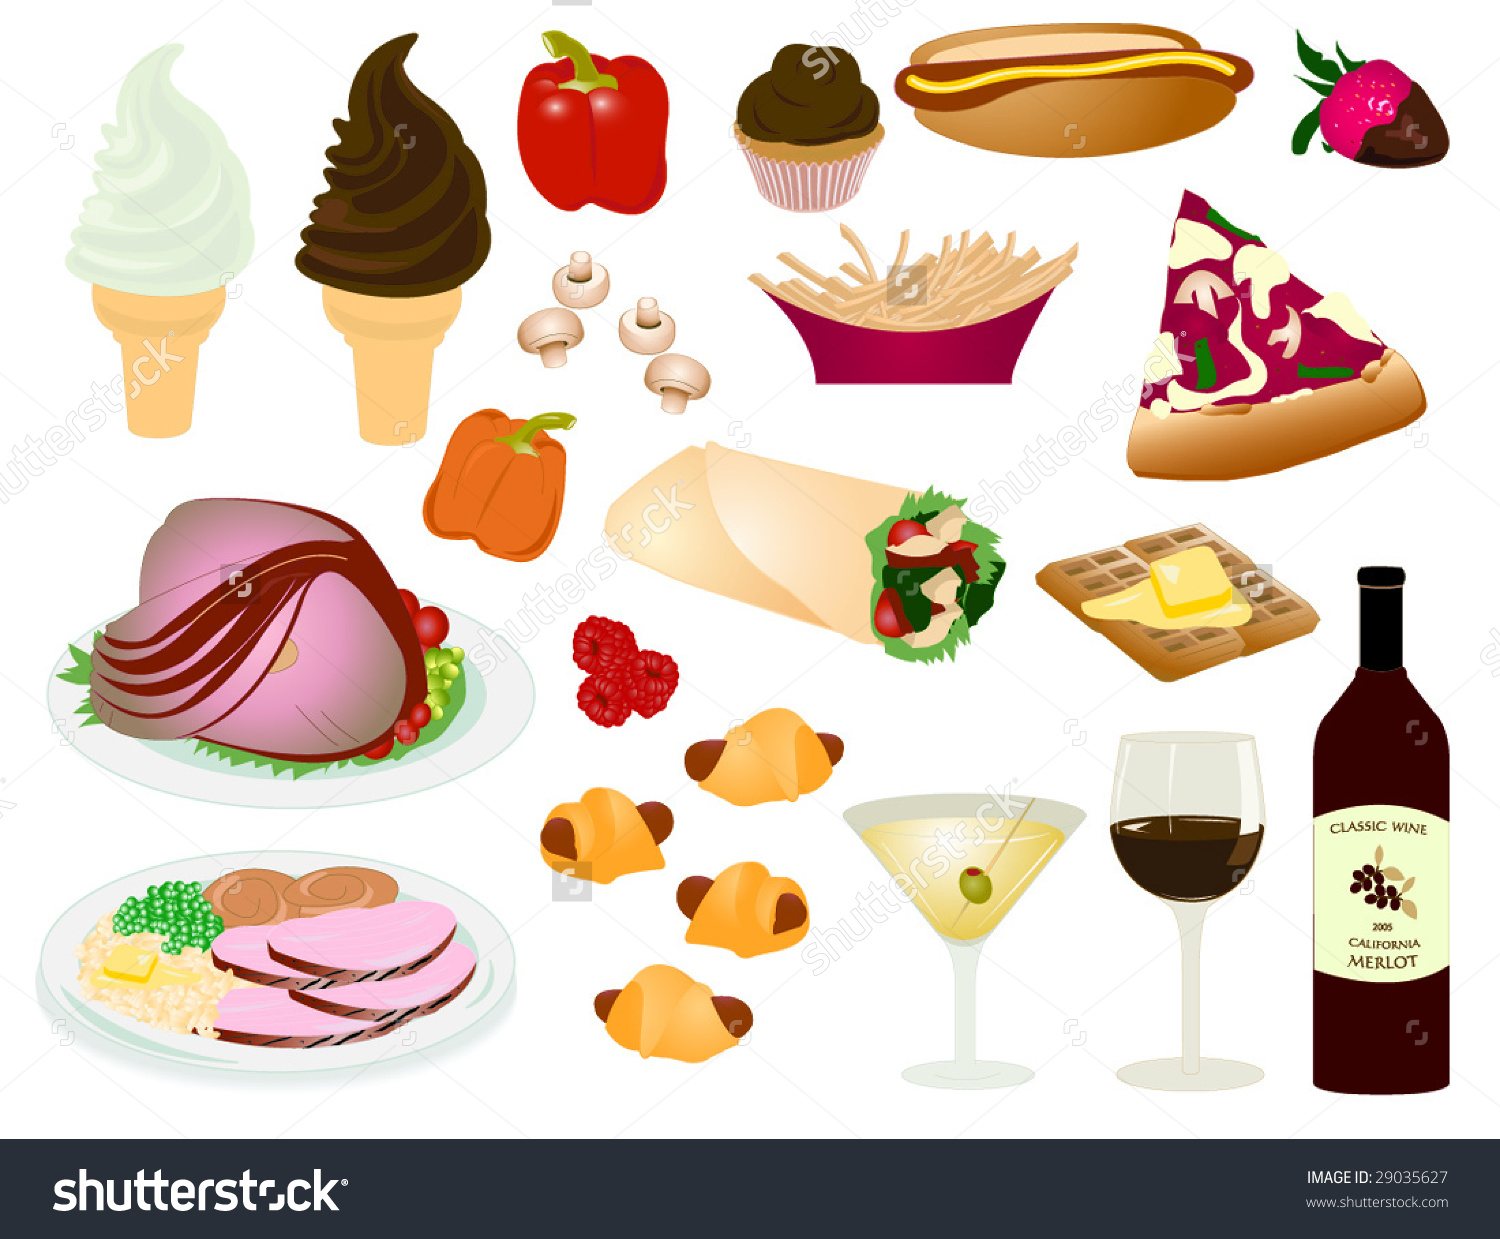 Clipart for food misc library Misc Food Items Stock Vector 29035627 - Shutterstock library